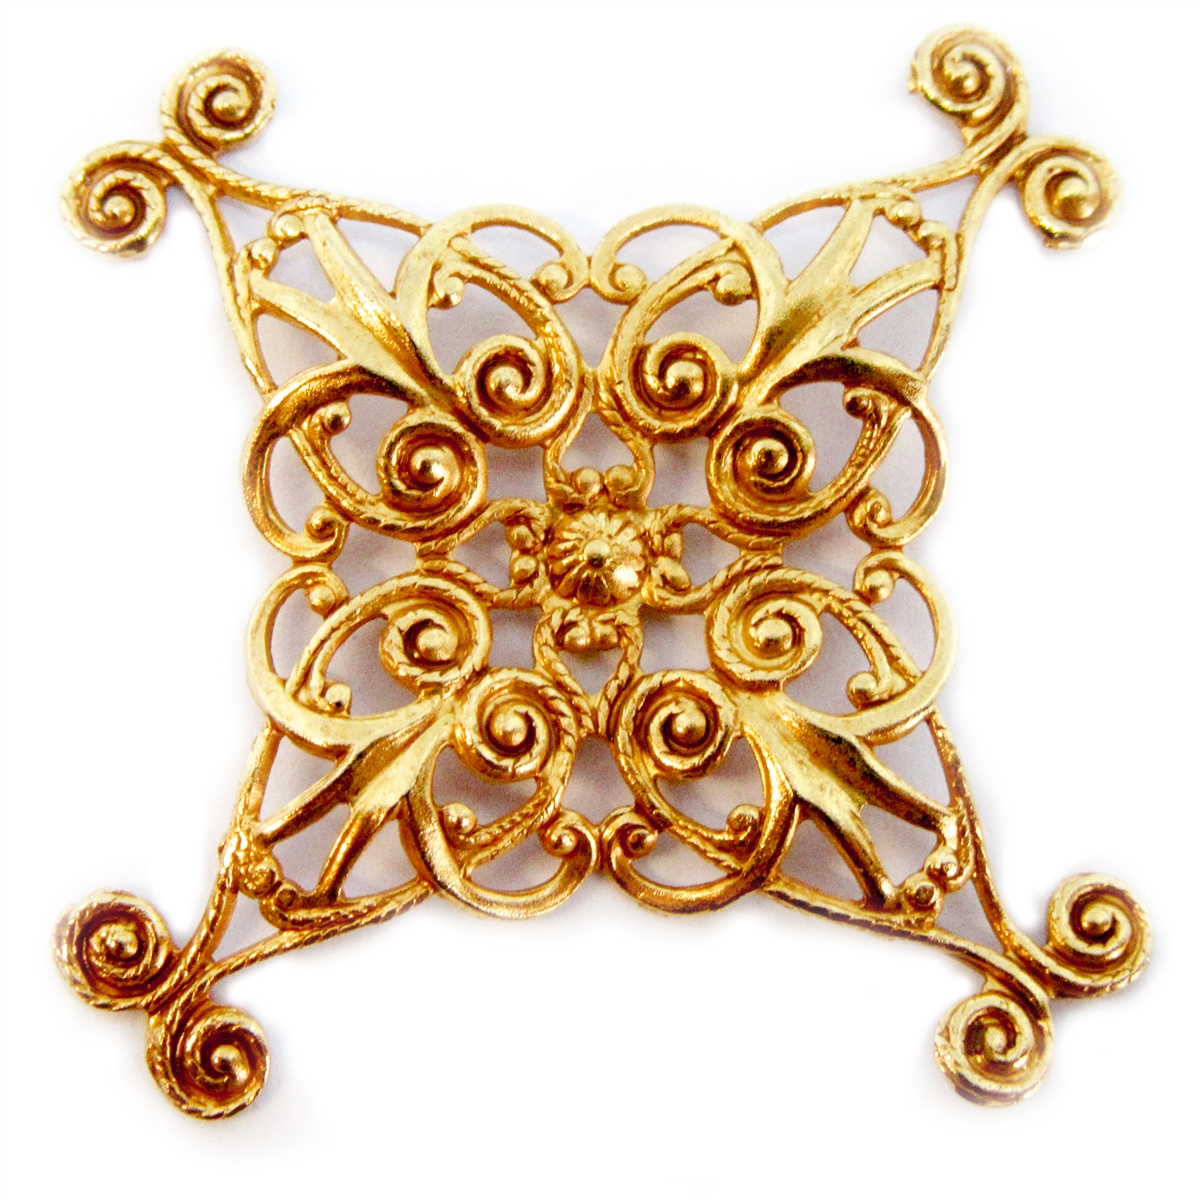 x shape style filigree classic gold plated filigree beading